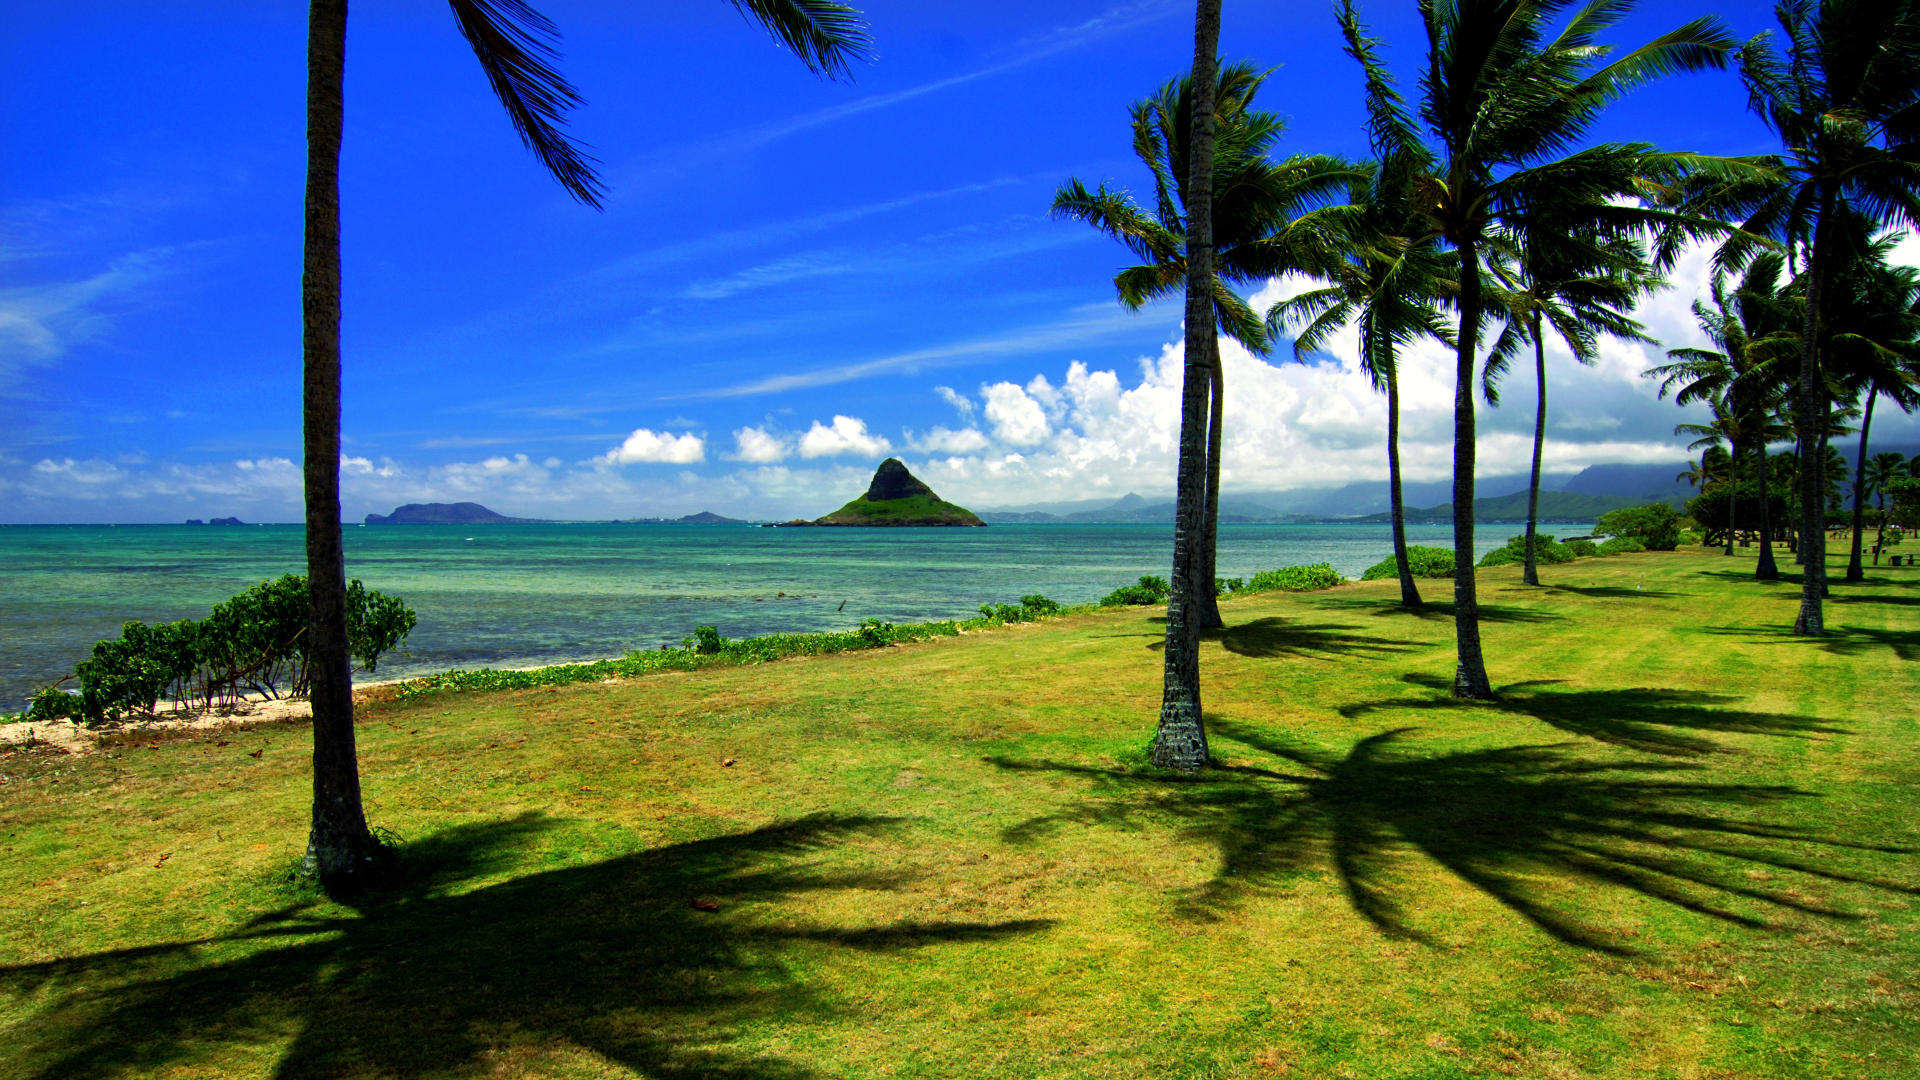 backgrounds wallpaper backrounds chinaman desktop beach hawaii 1920x1080